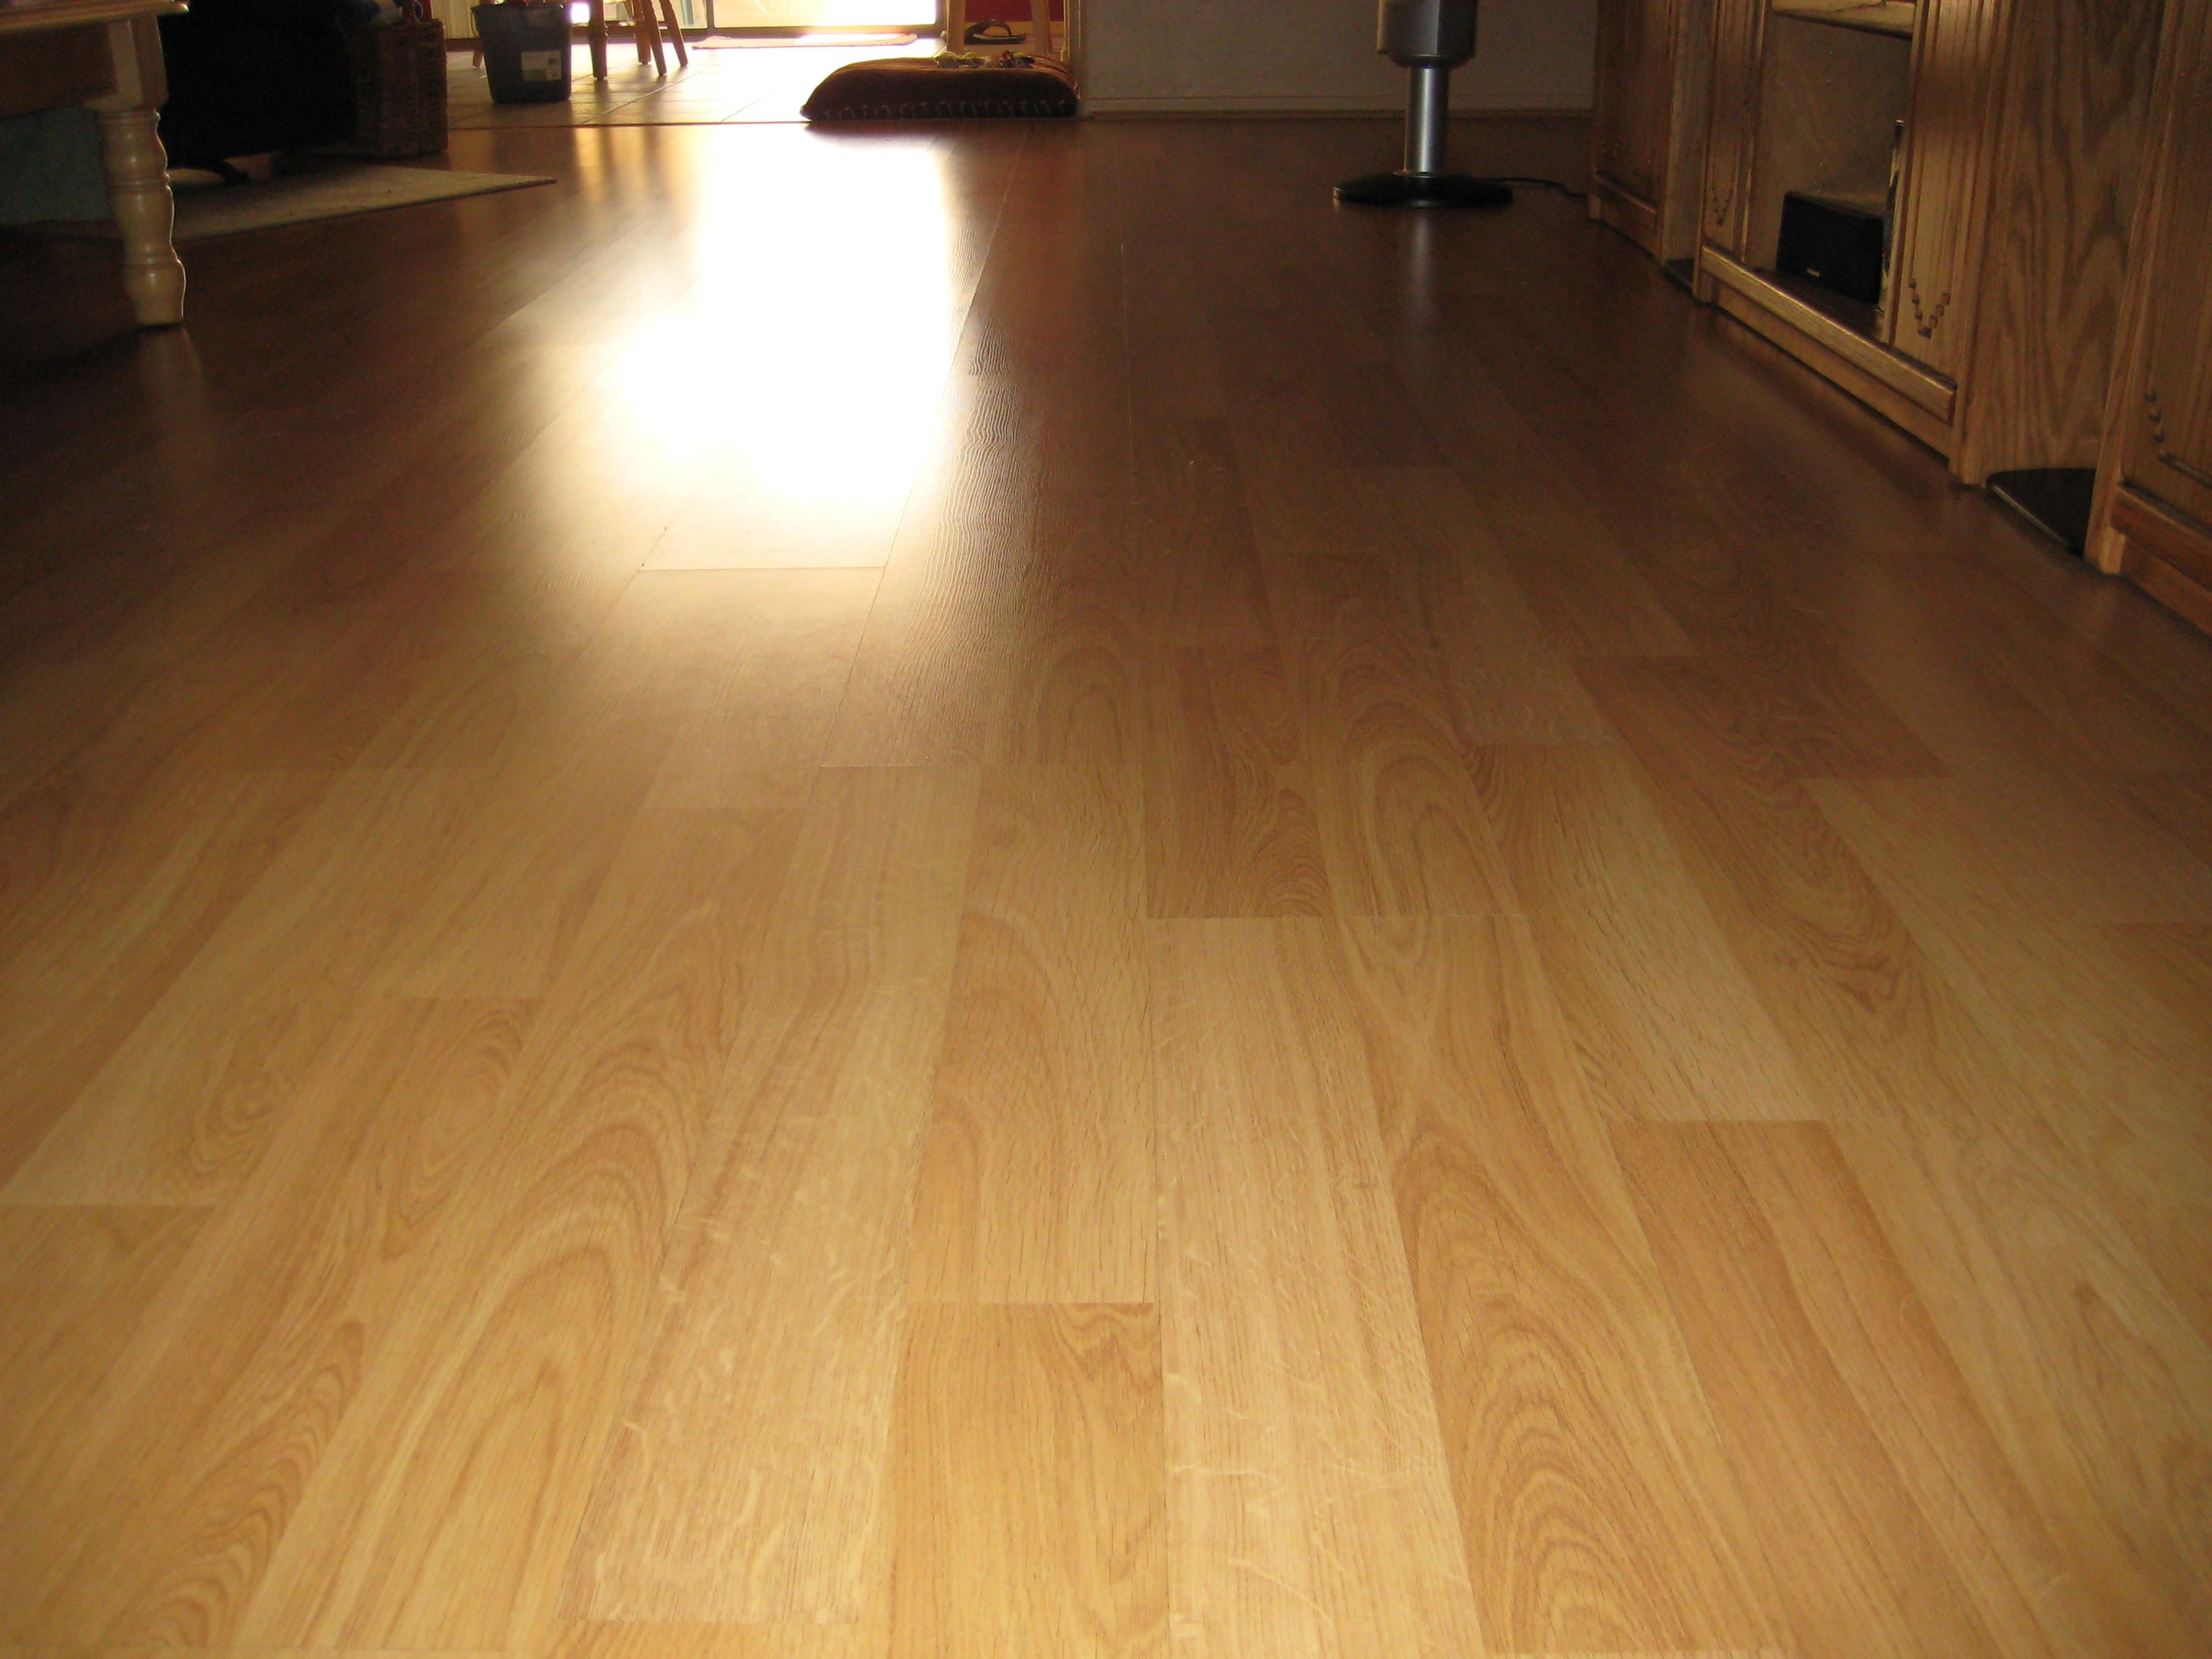 are image missing homeowners floors clean there that wood how number a of tips to laminate simple most floor flooring ways